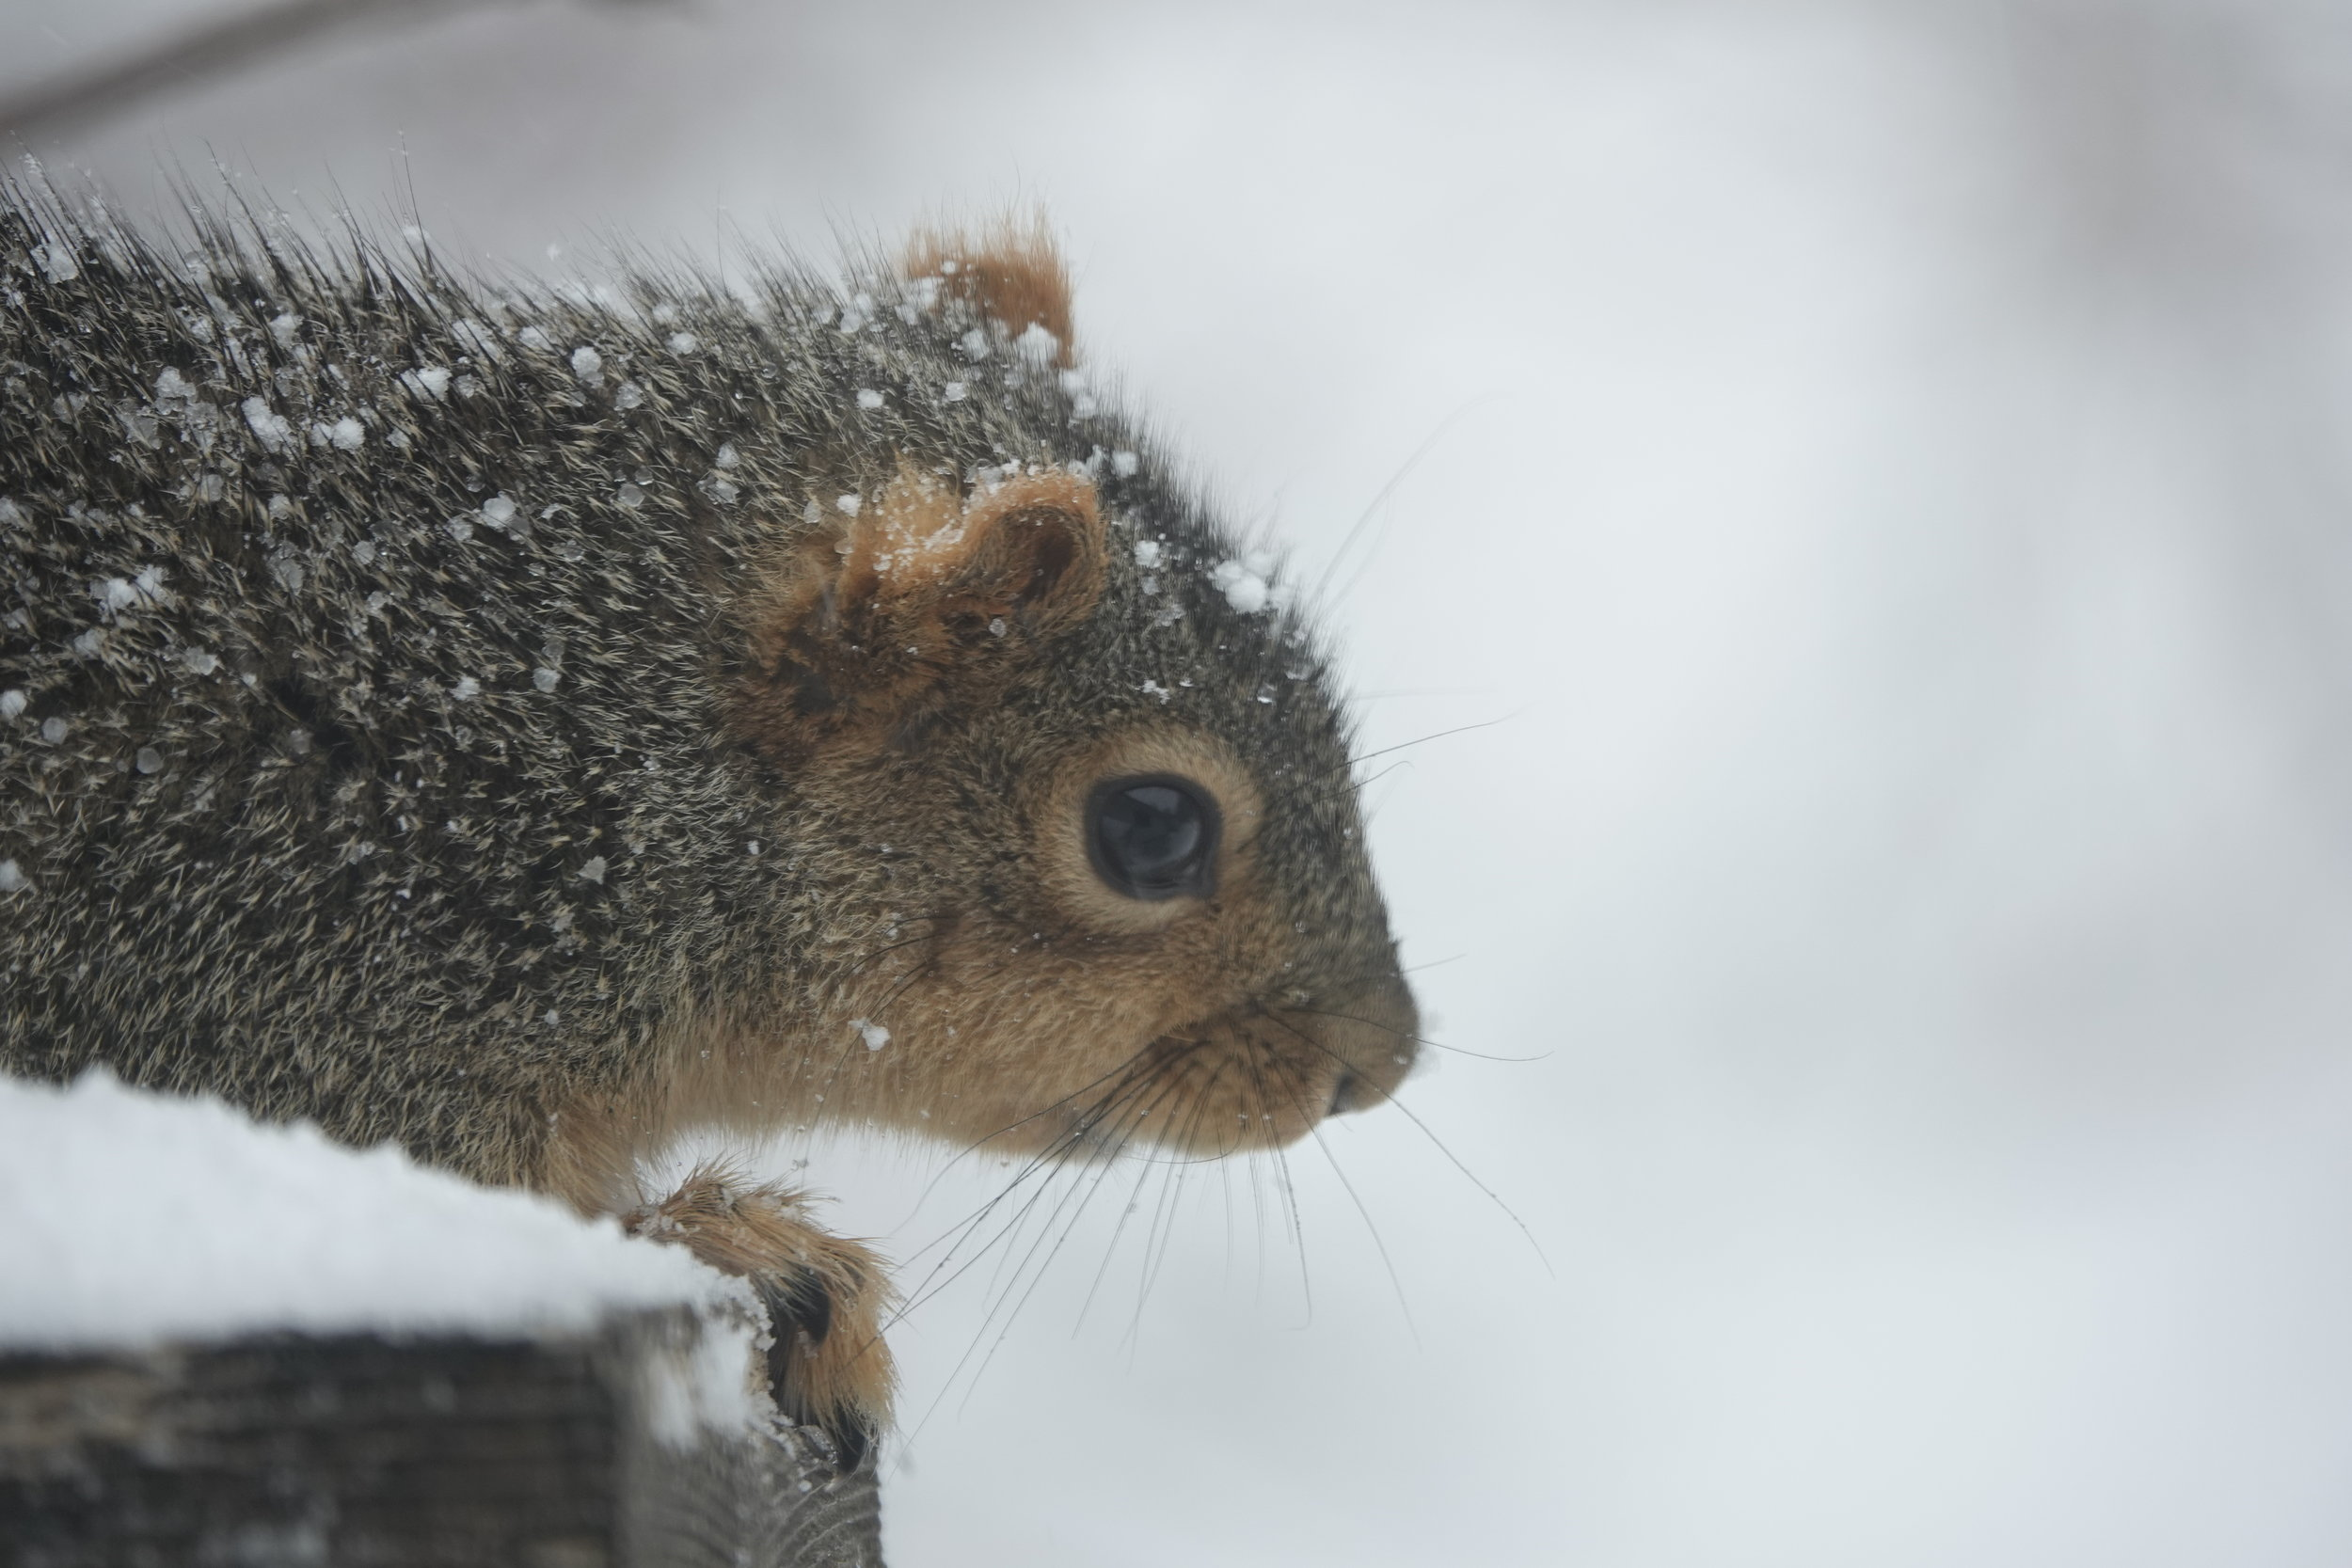 It wasn't long ago when this squirrel watched winter go by.